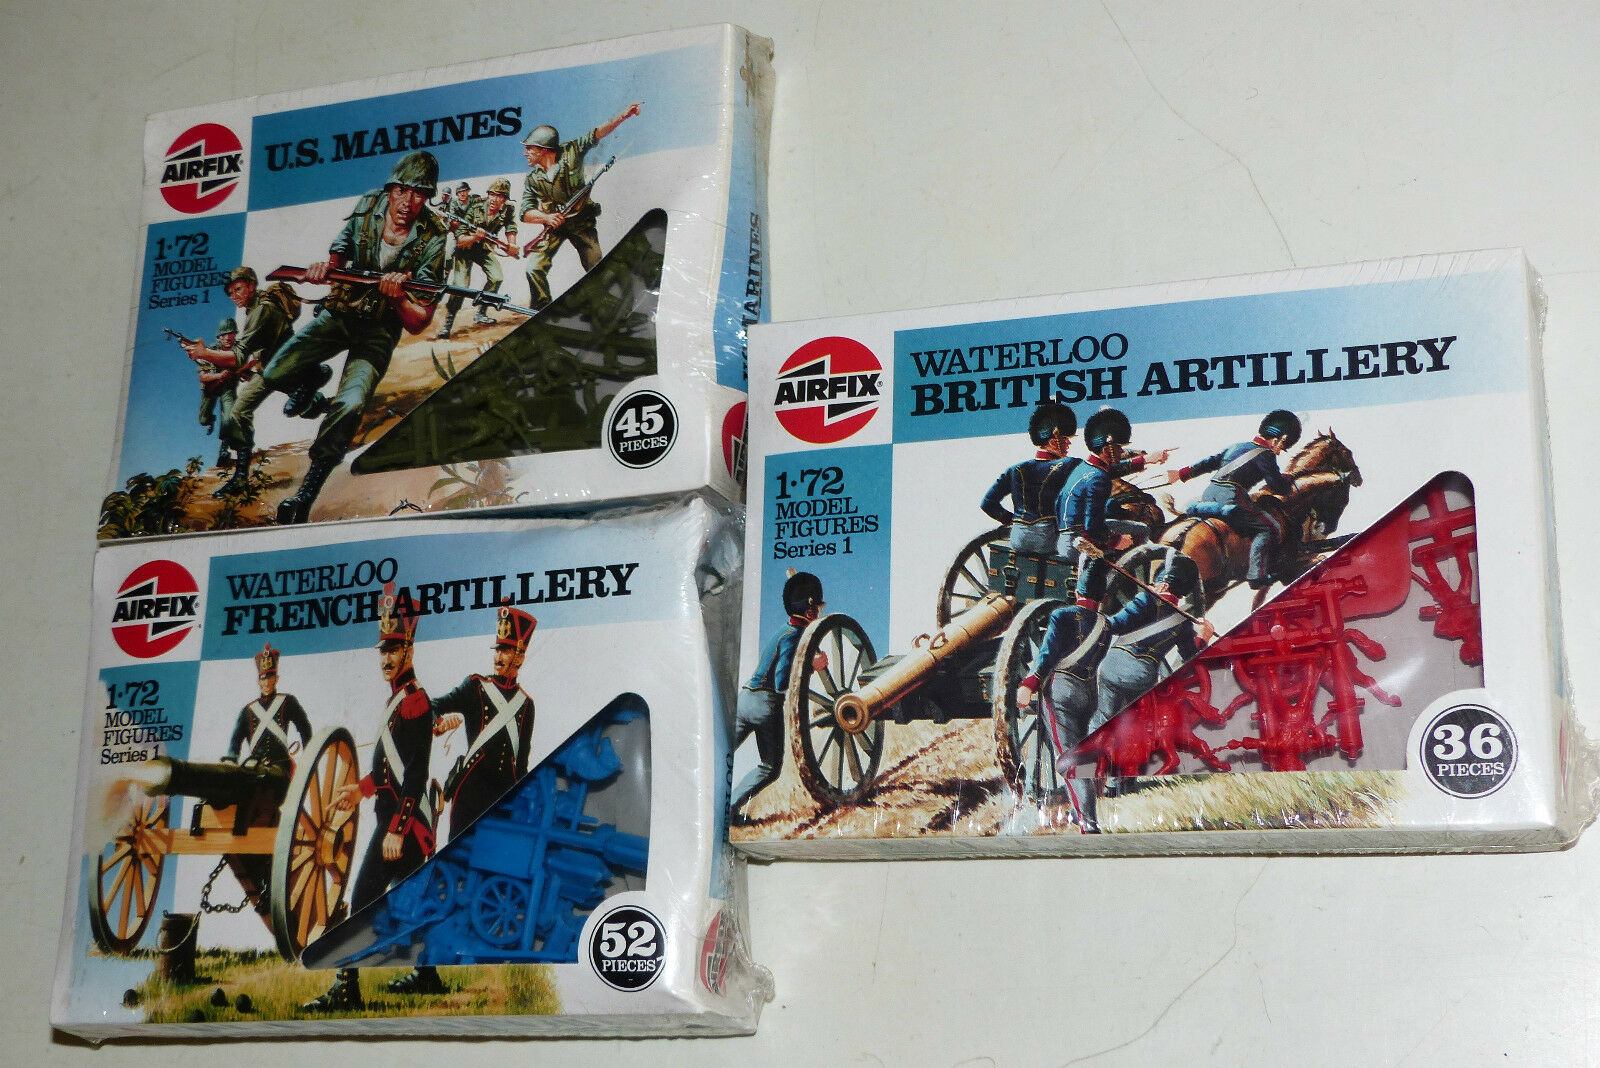 3x Airfix figuras set 01716 marines, 01746 British - 01737 French Artillery 1 72